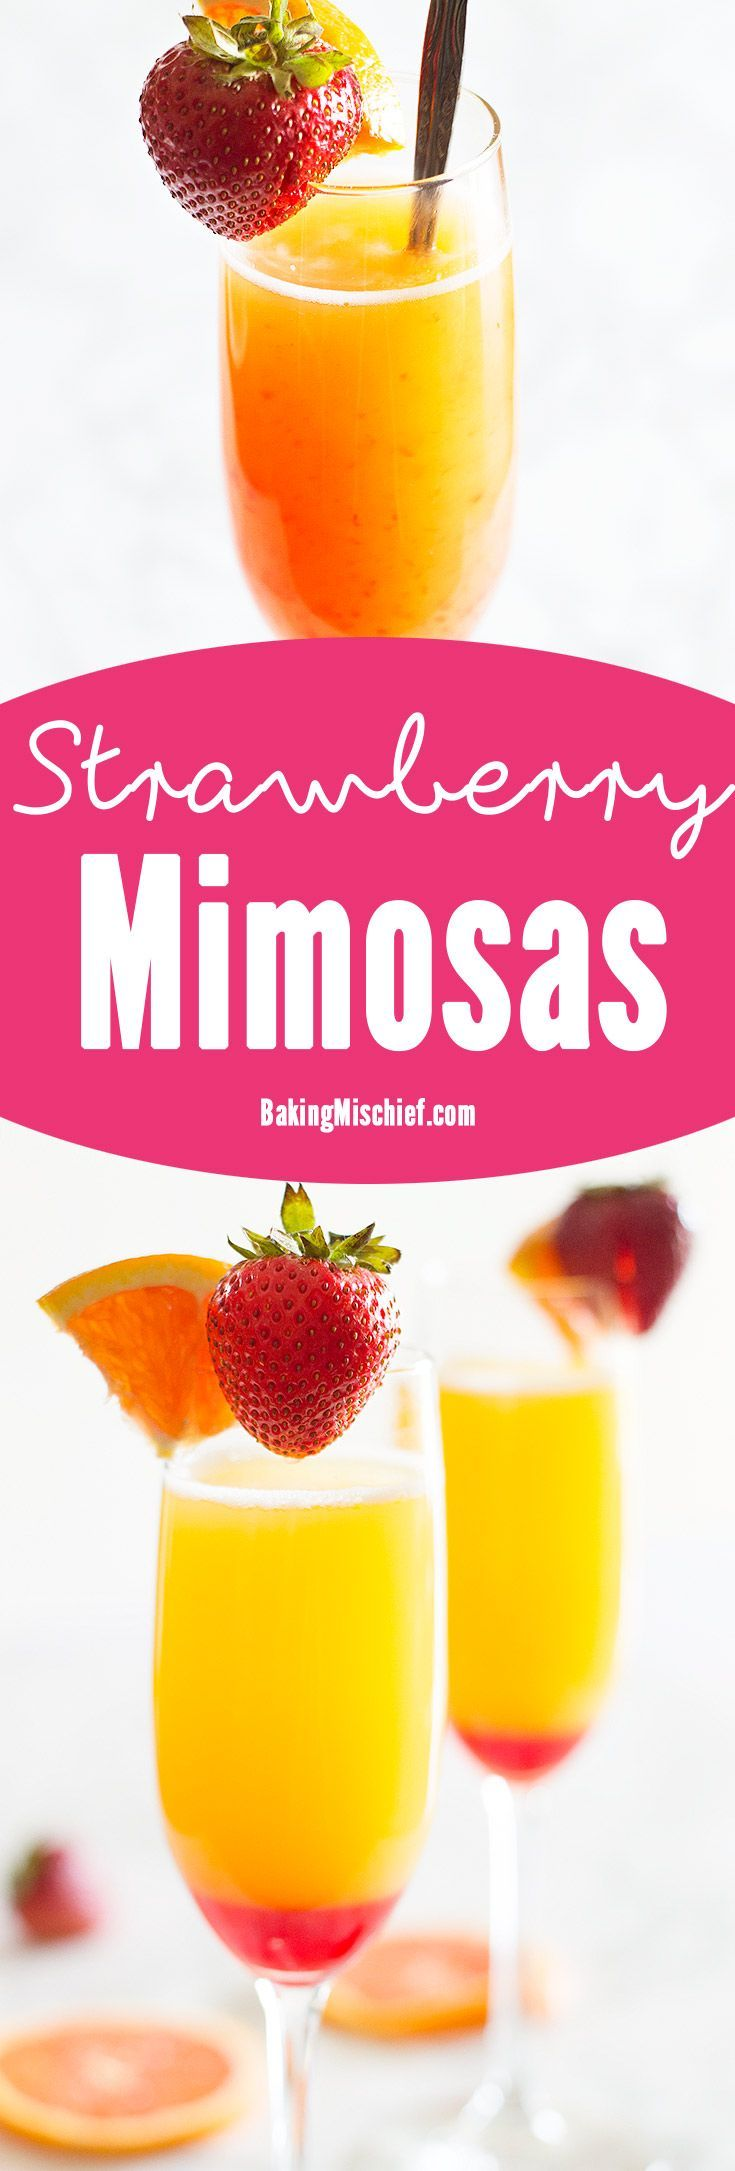 """Make brunch even better with a simple but beautiful strawberry upgrade to your classic mimosa recipe. Recipe includes nutritional information and """"mocktail"""" instructions. From BakingMischief.com"""